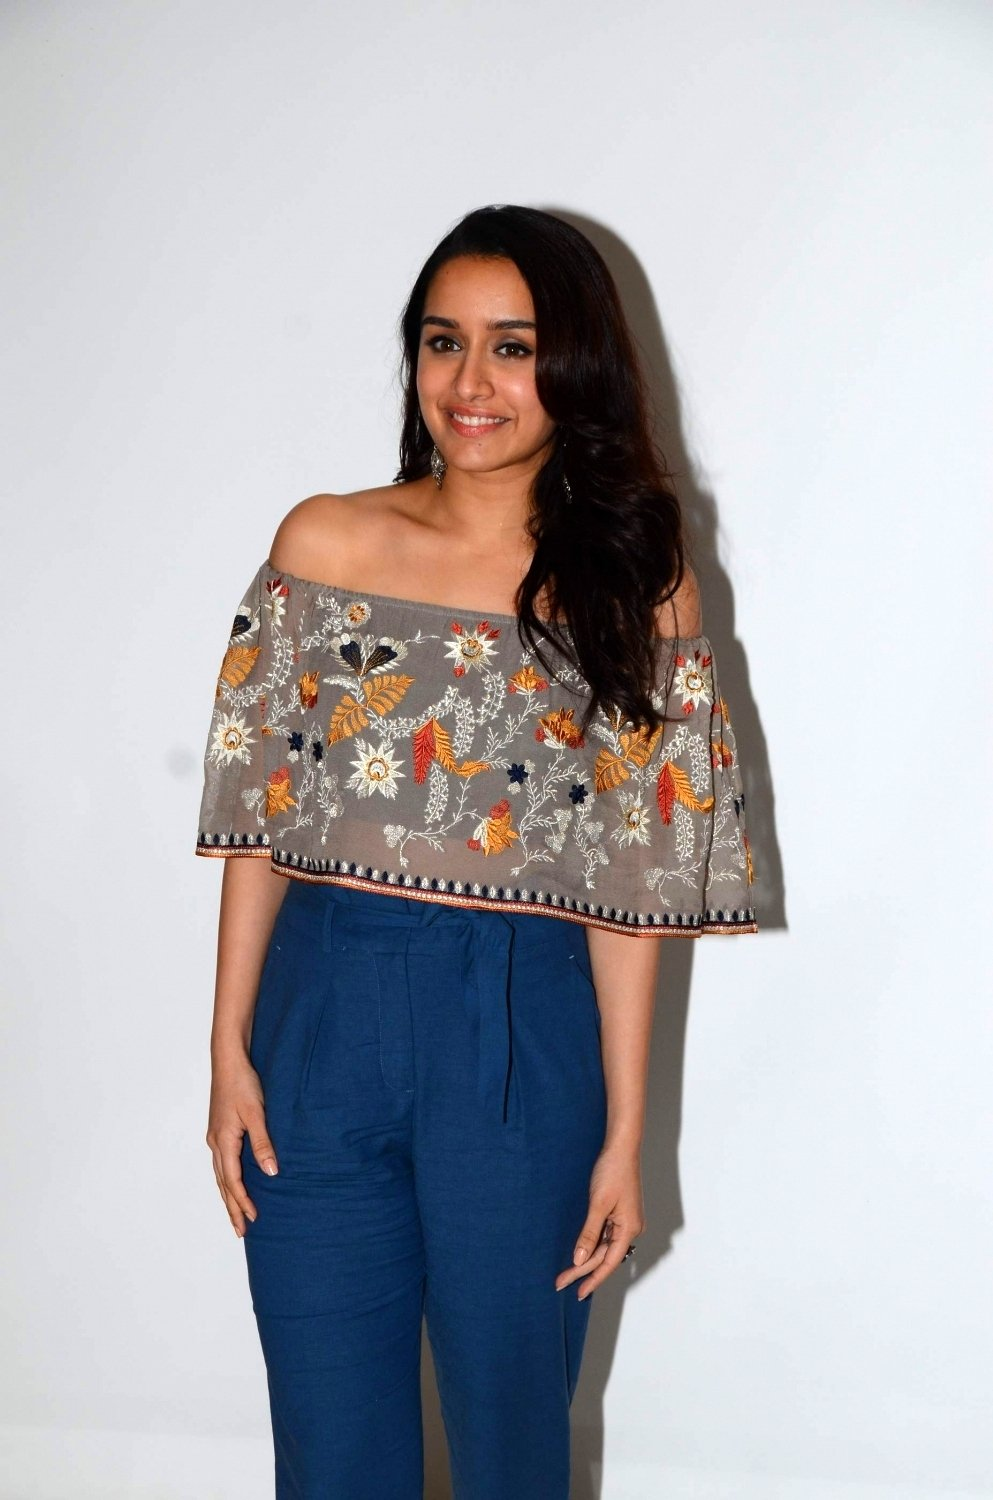 Shraddha Kapoor in a Transparent top Blue Trousers tube bra promoting movie Half Girlfriend